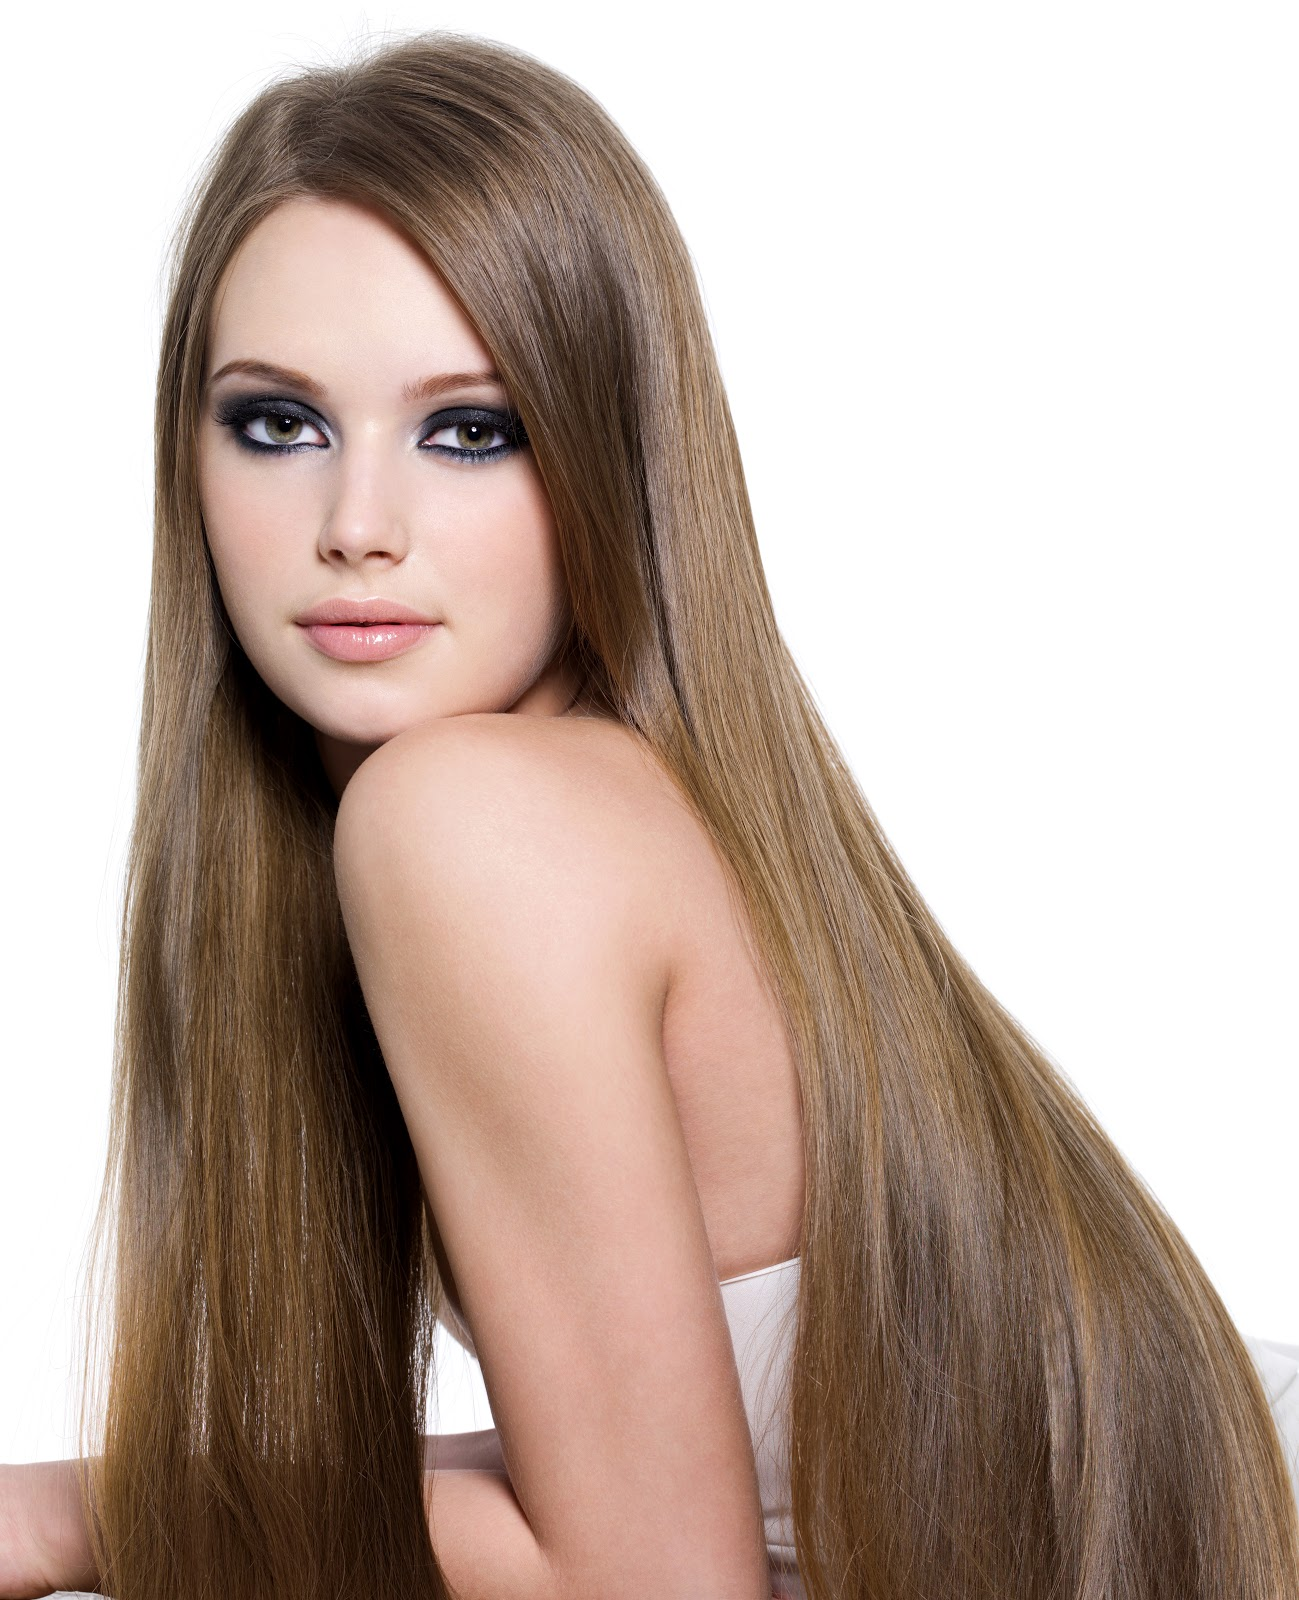 Long Hair Style Girls Hair Salon Advice